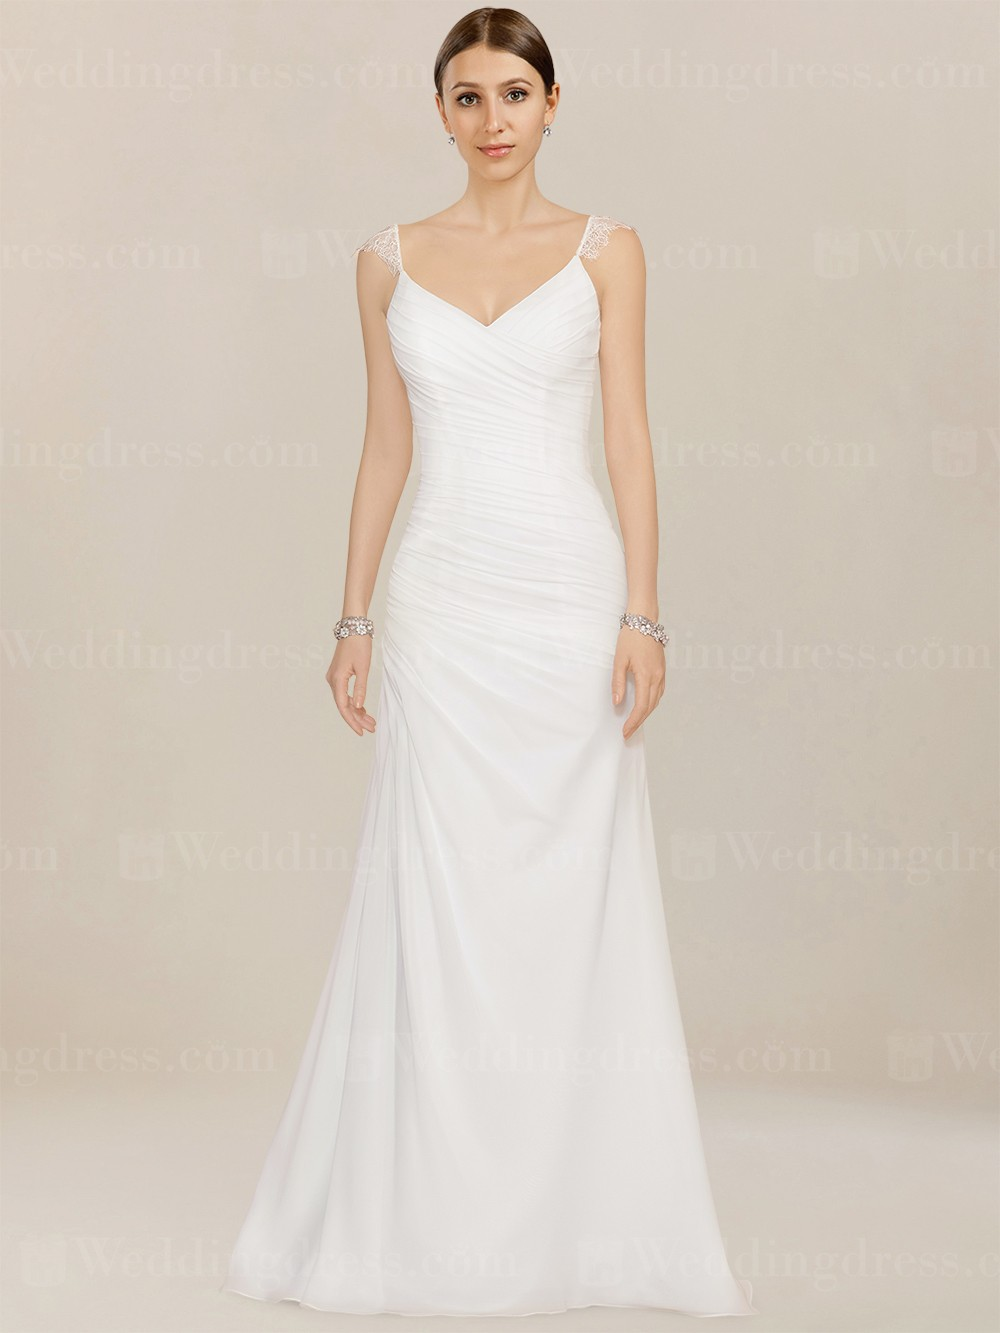 Casual Beach Wedding Dresses Cheap